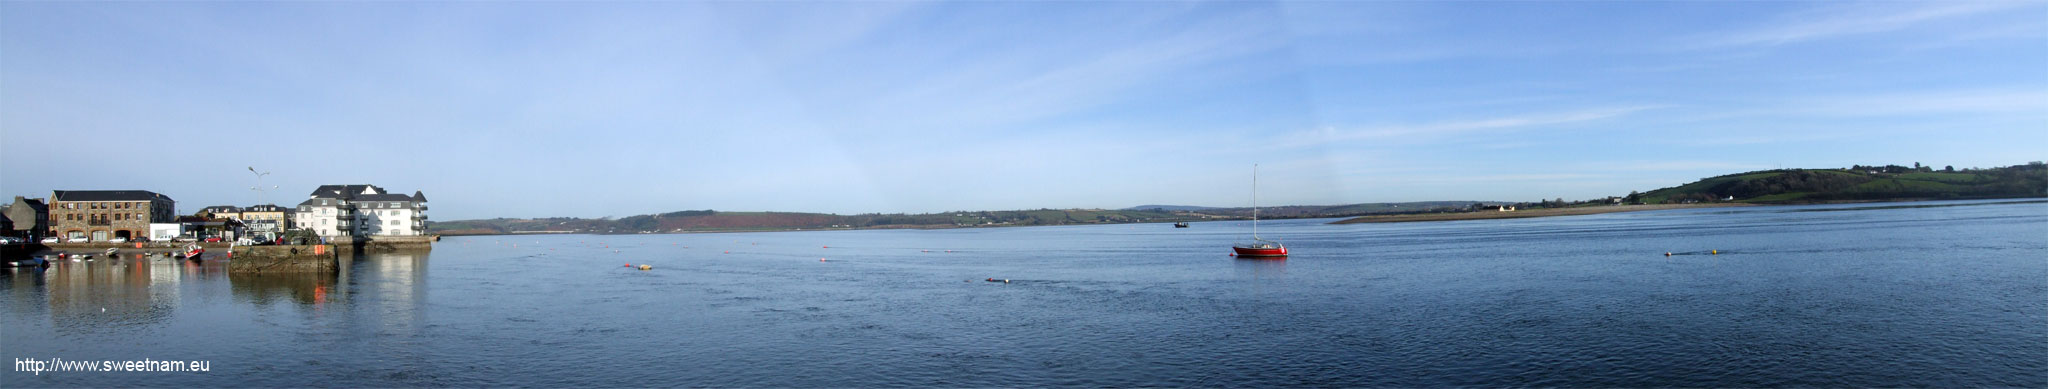 Panoramic photo of Youghal looking up the River Blackwater, taken from Youghal Jetty.